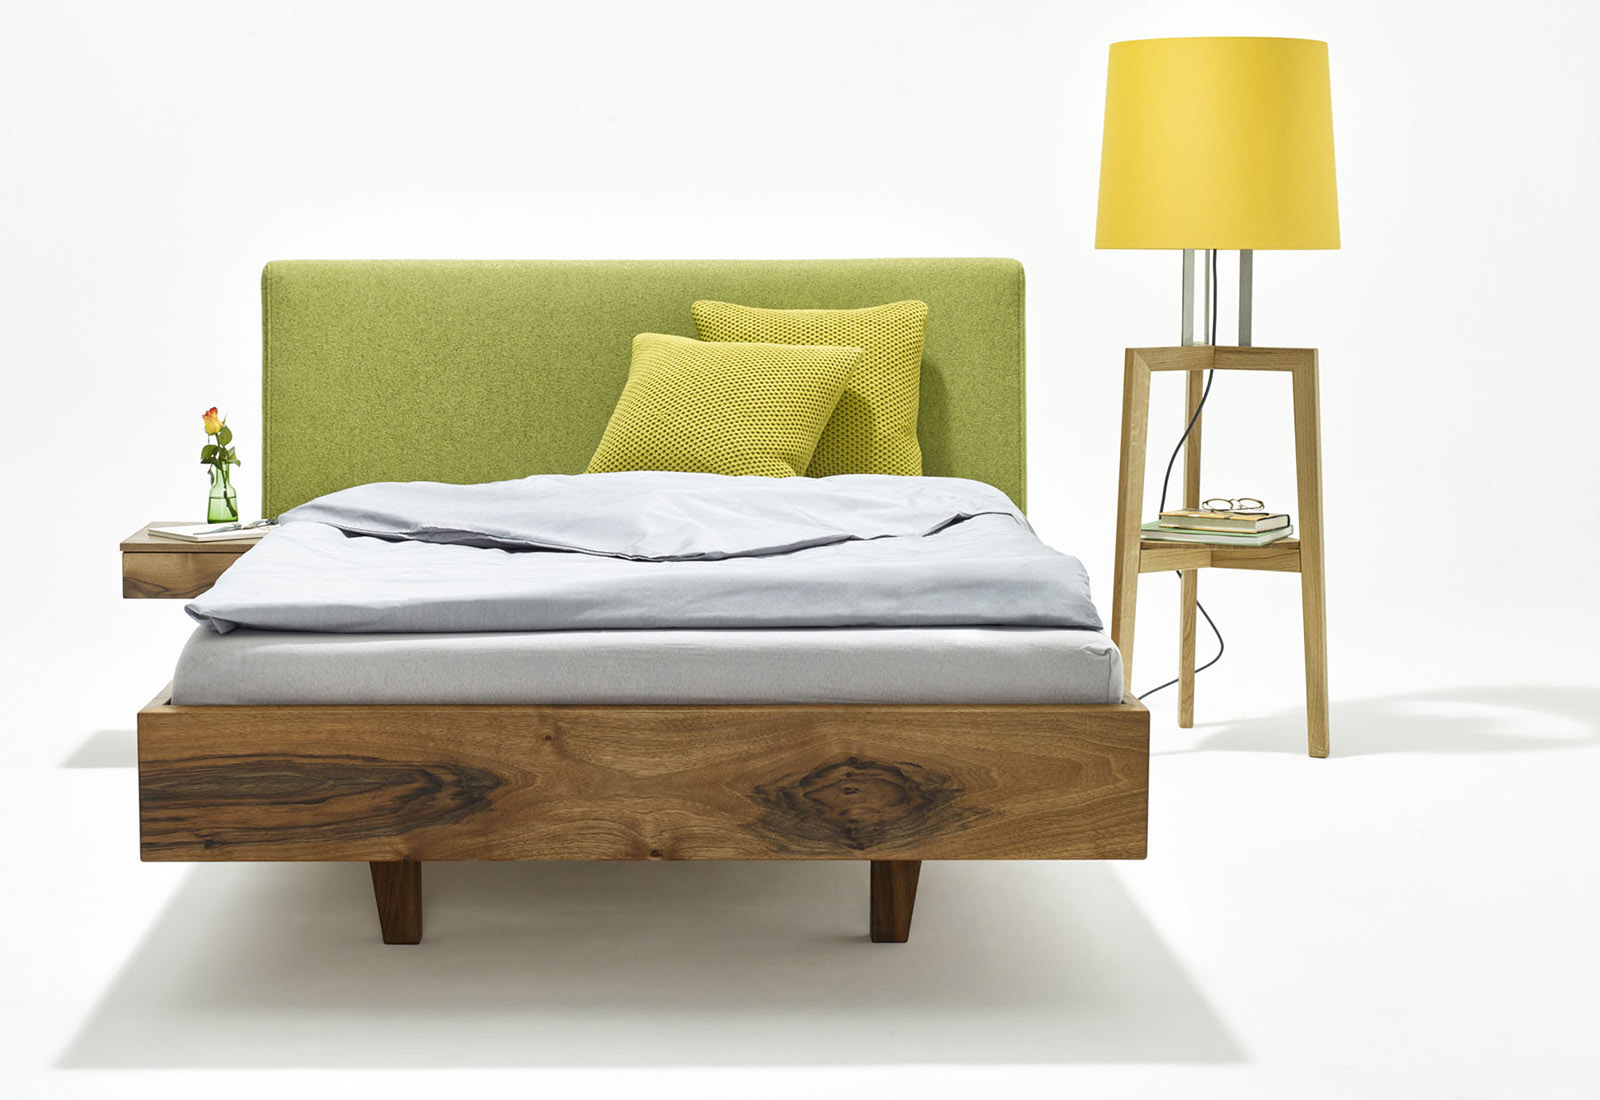 FLY bedtable